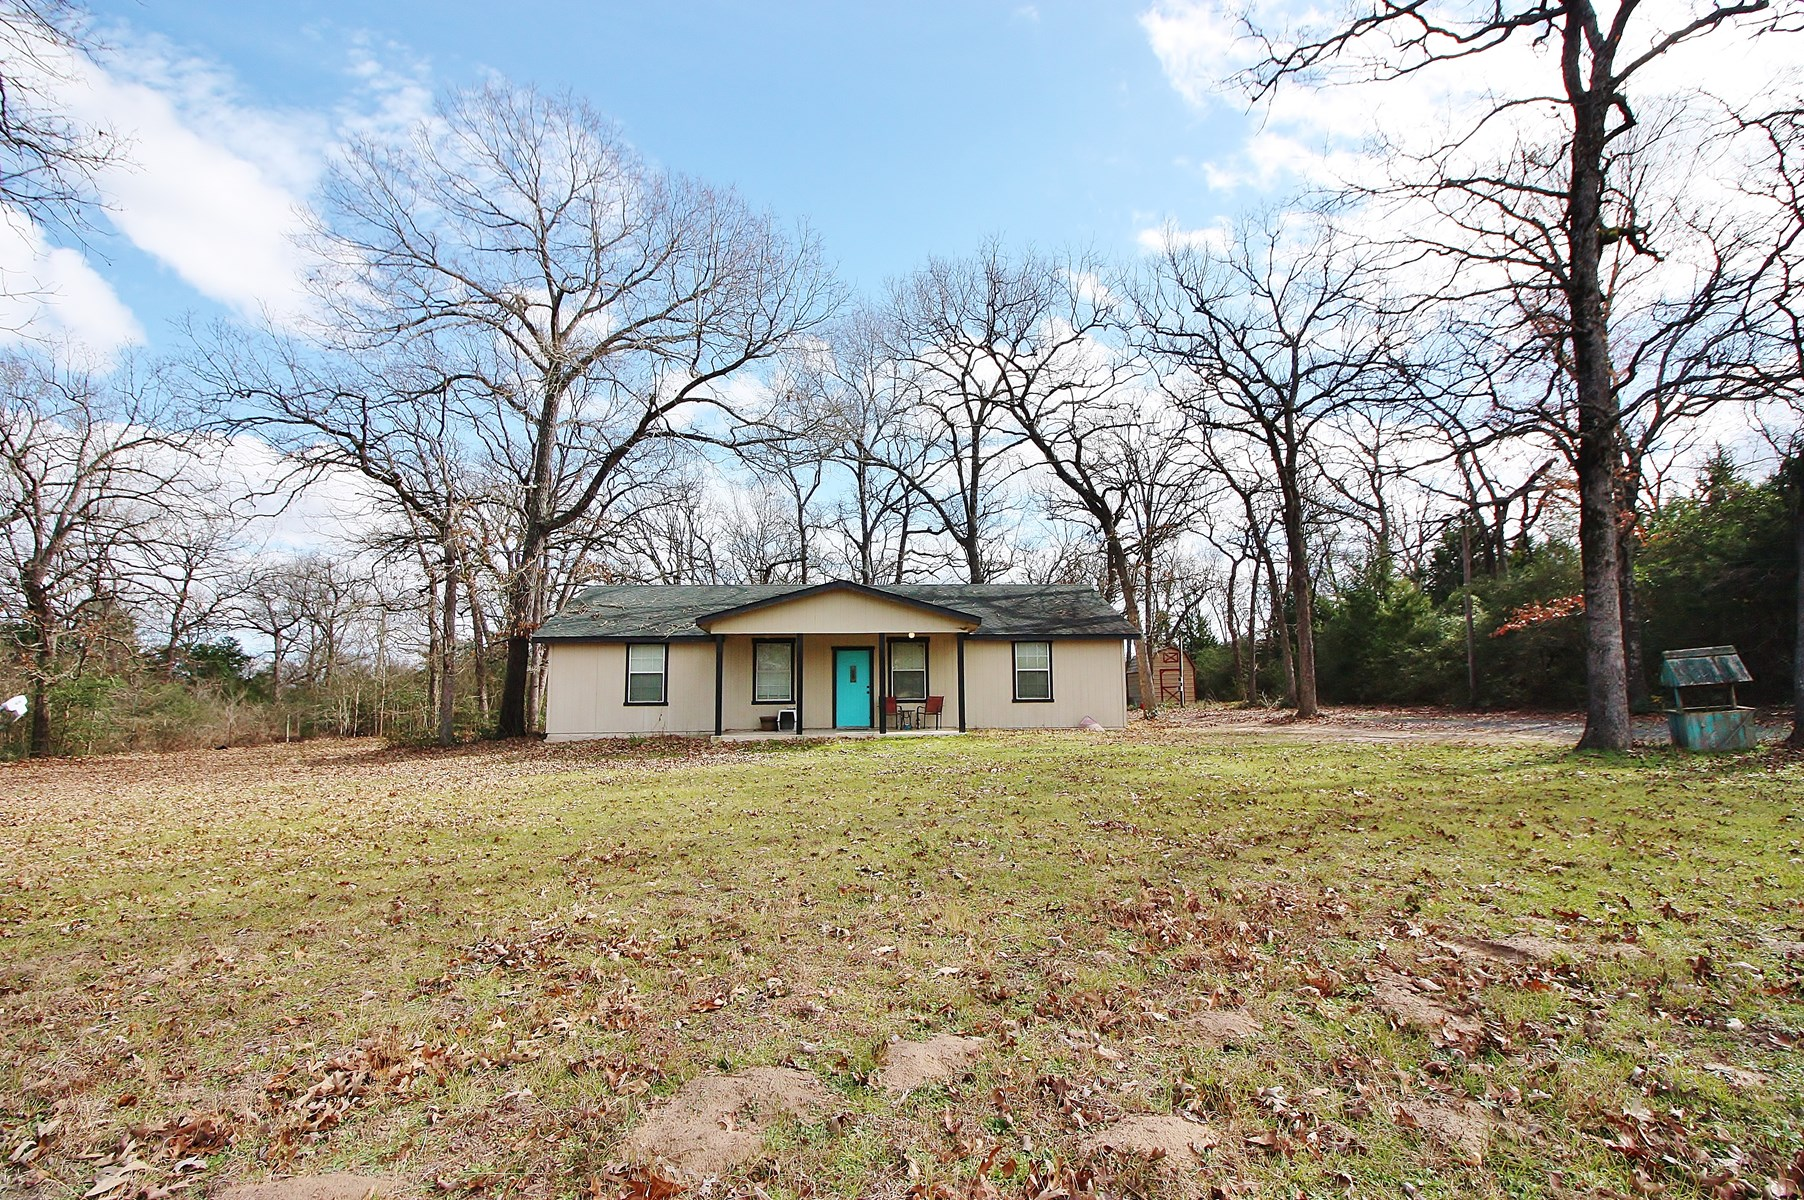 Home on Acreage for Sale in Buffalo, TX